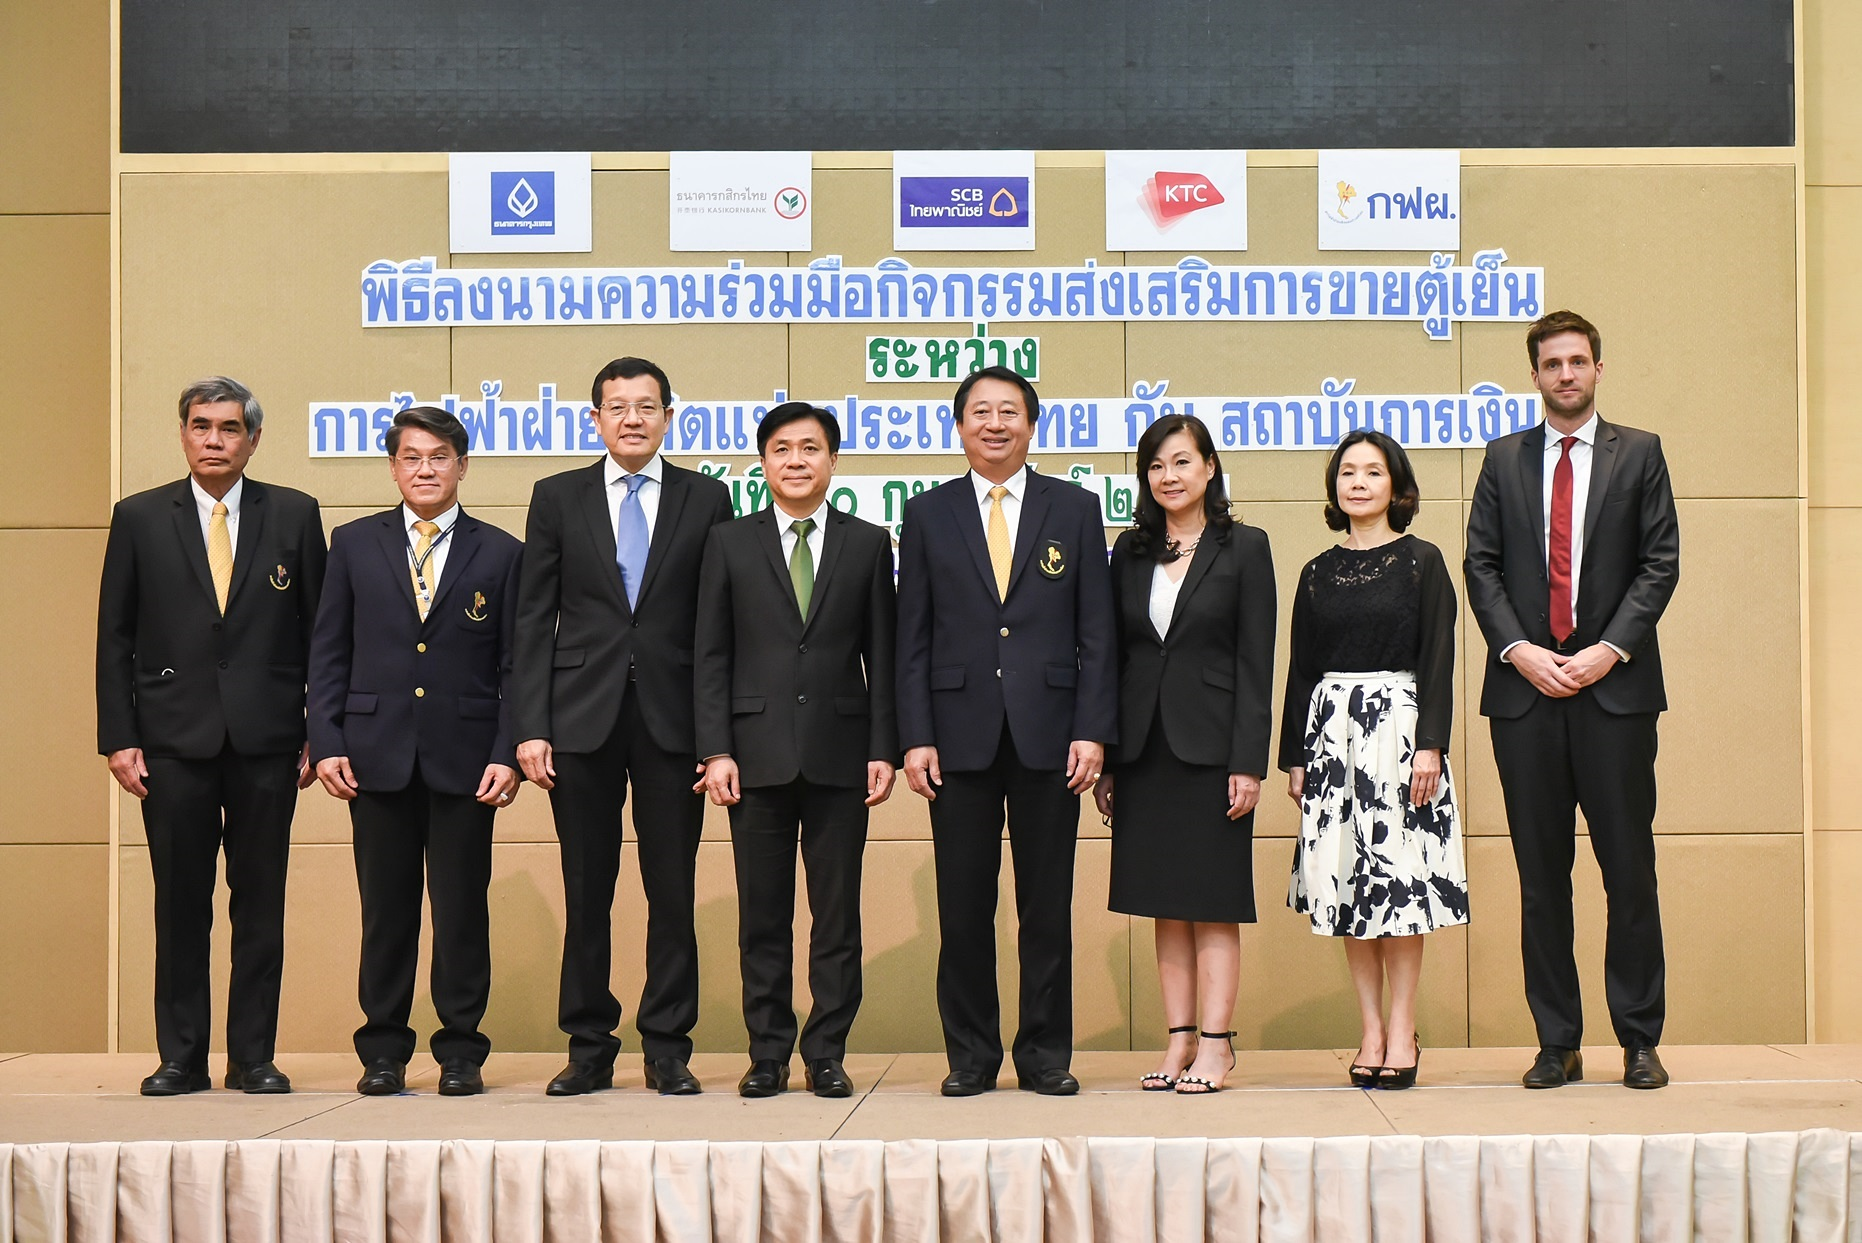 EGAT cooperates with 4 financial institutions for latest campaign, Label No.5 fridge